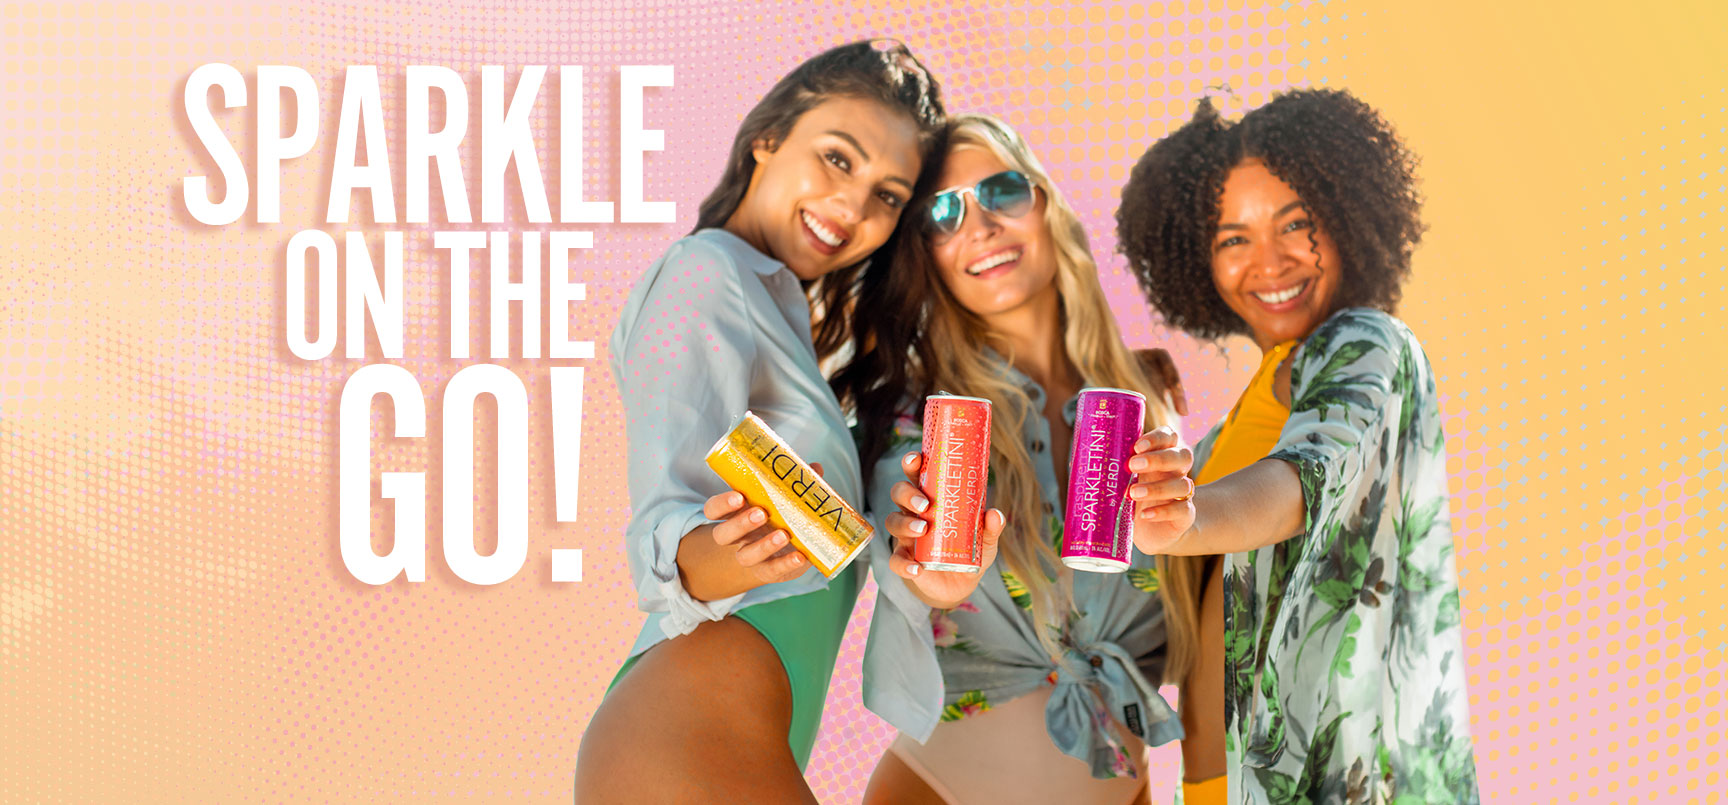 sparkle on the go cans